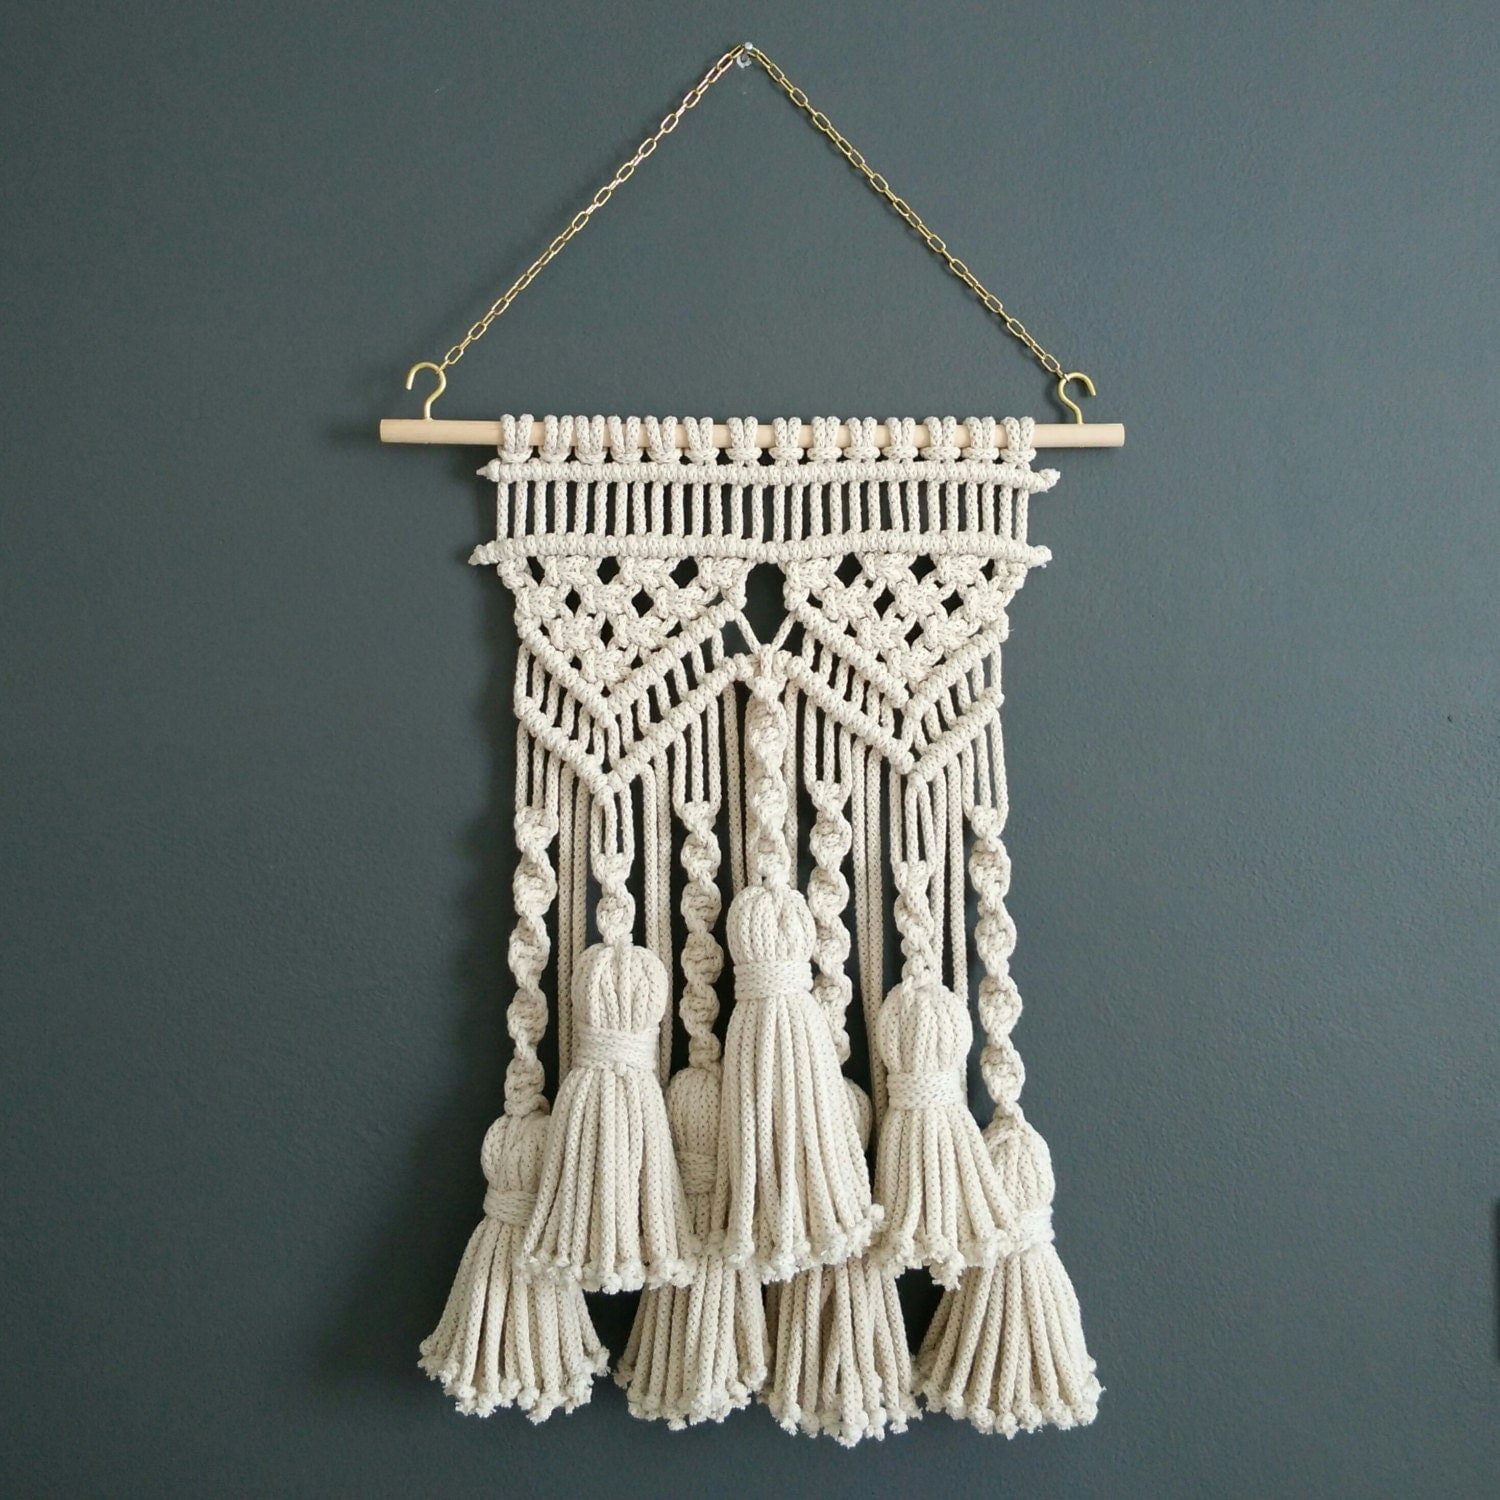 tassel macrame wall hanging macram bohemian weaving wall art. Black Bedroom Furniture Sets. Home Design Ideas